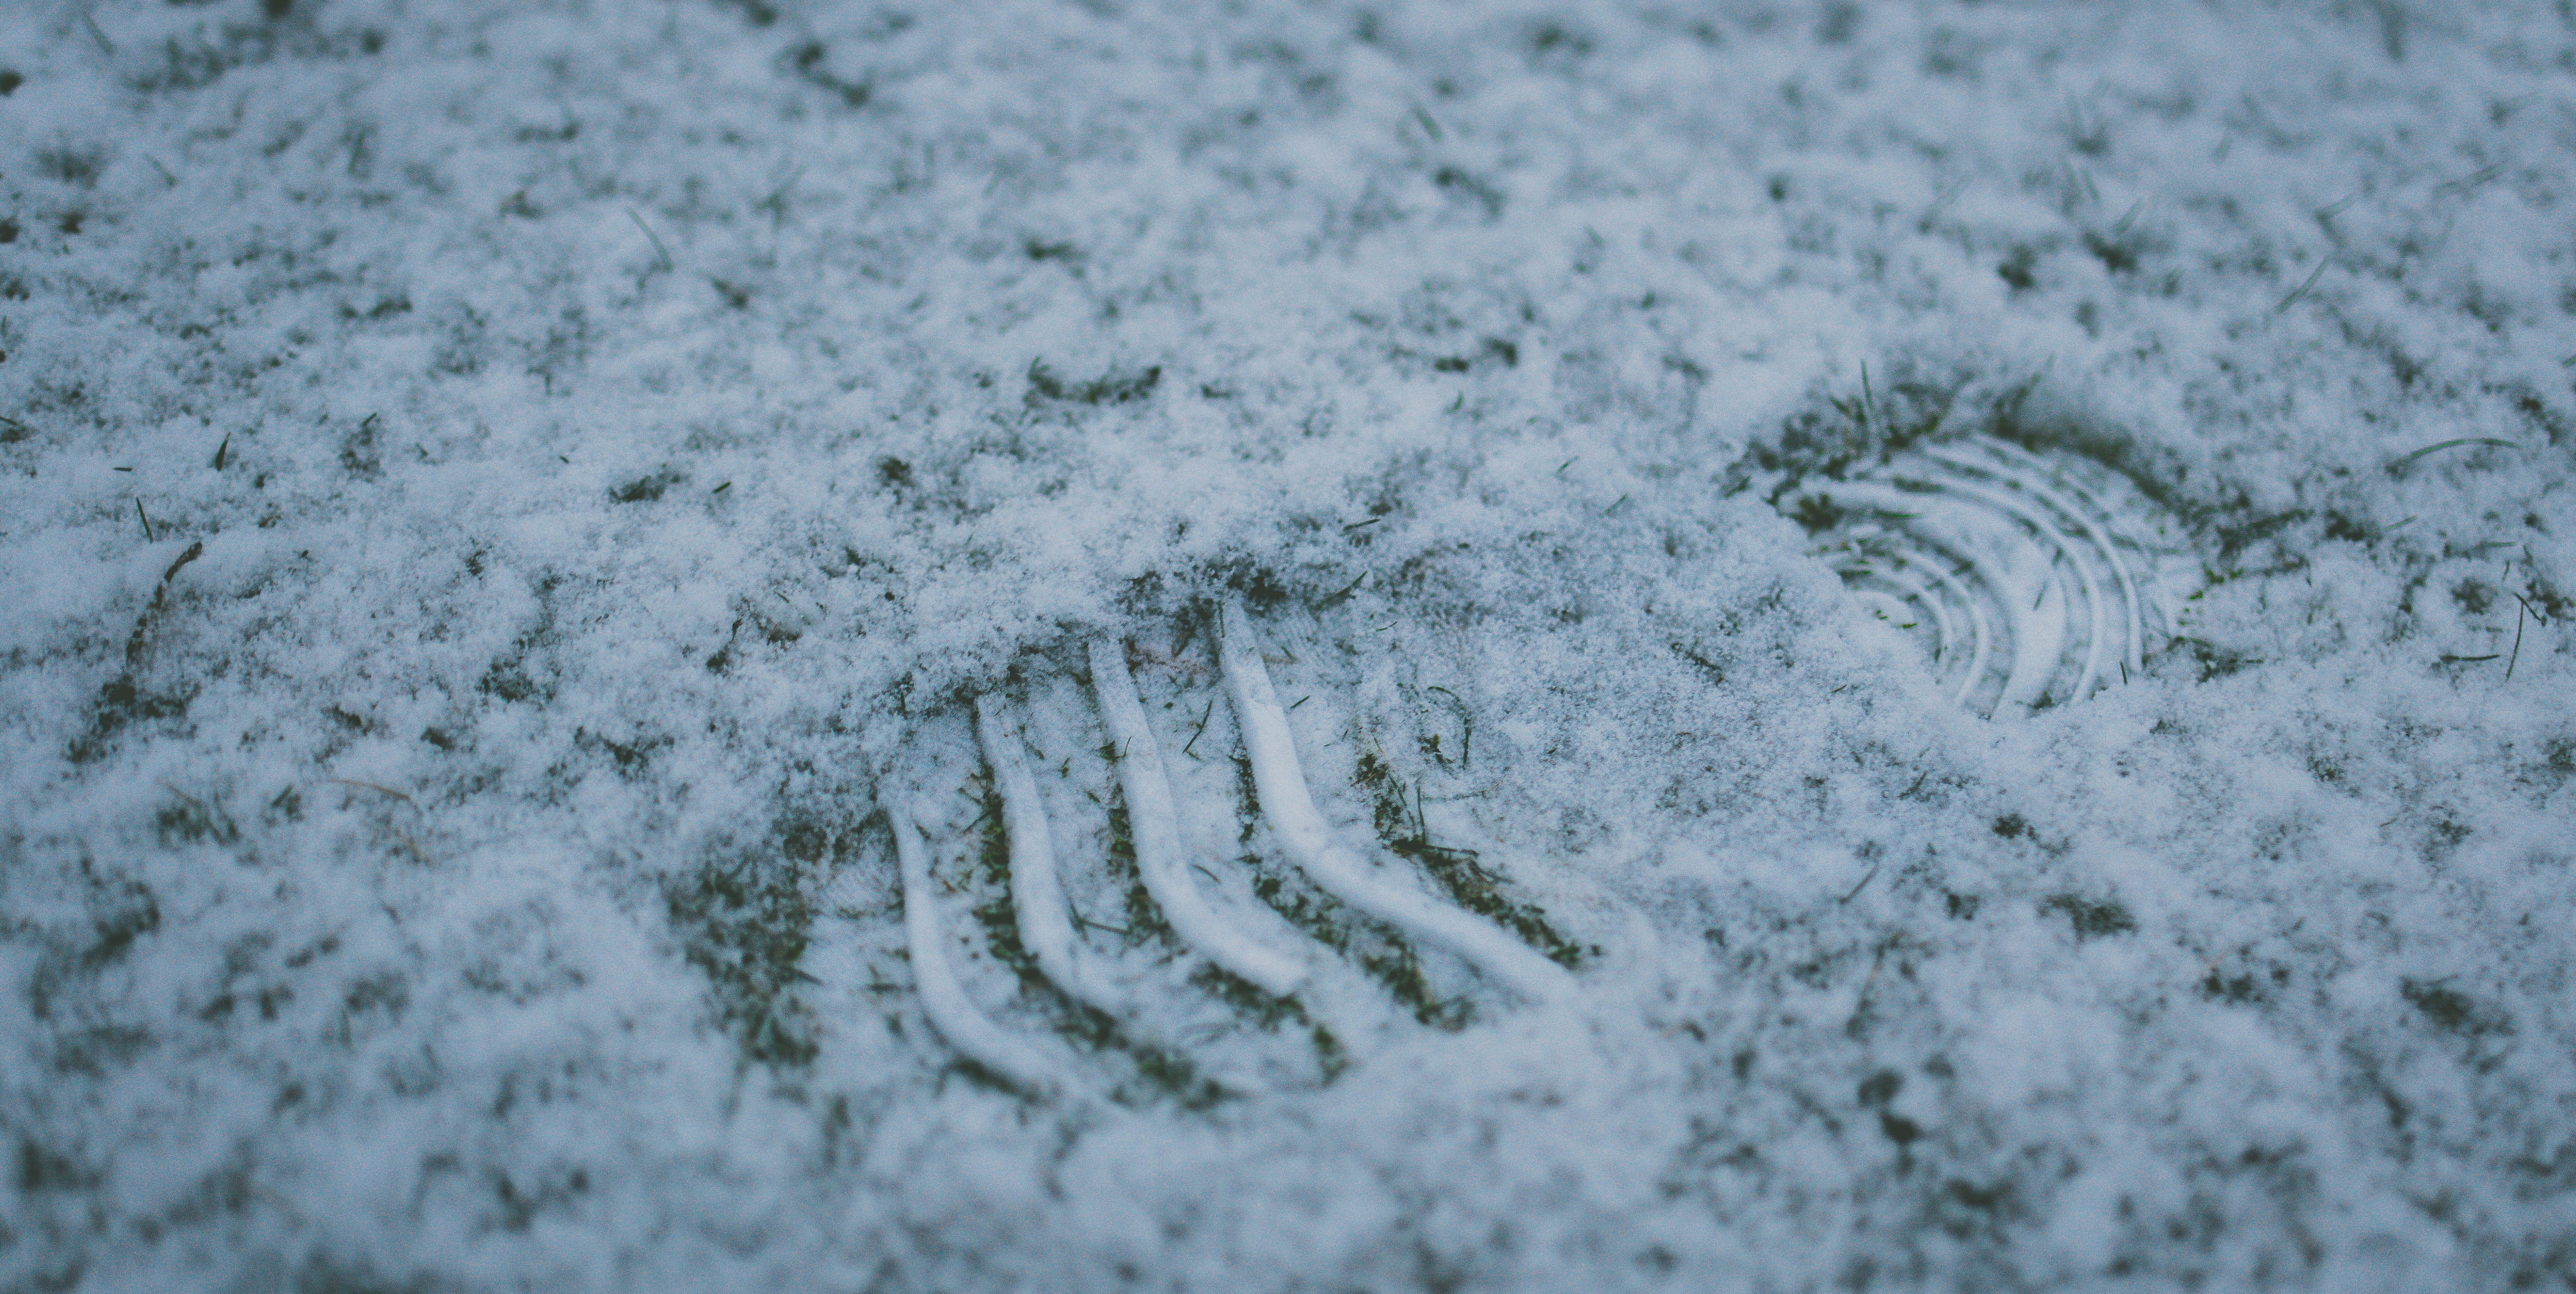 Photo of a footprint in the white snow